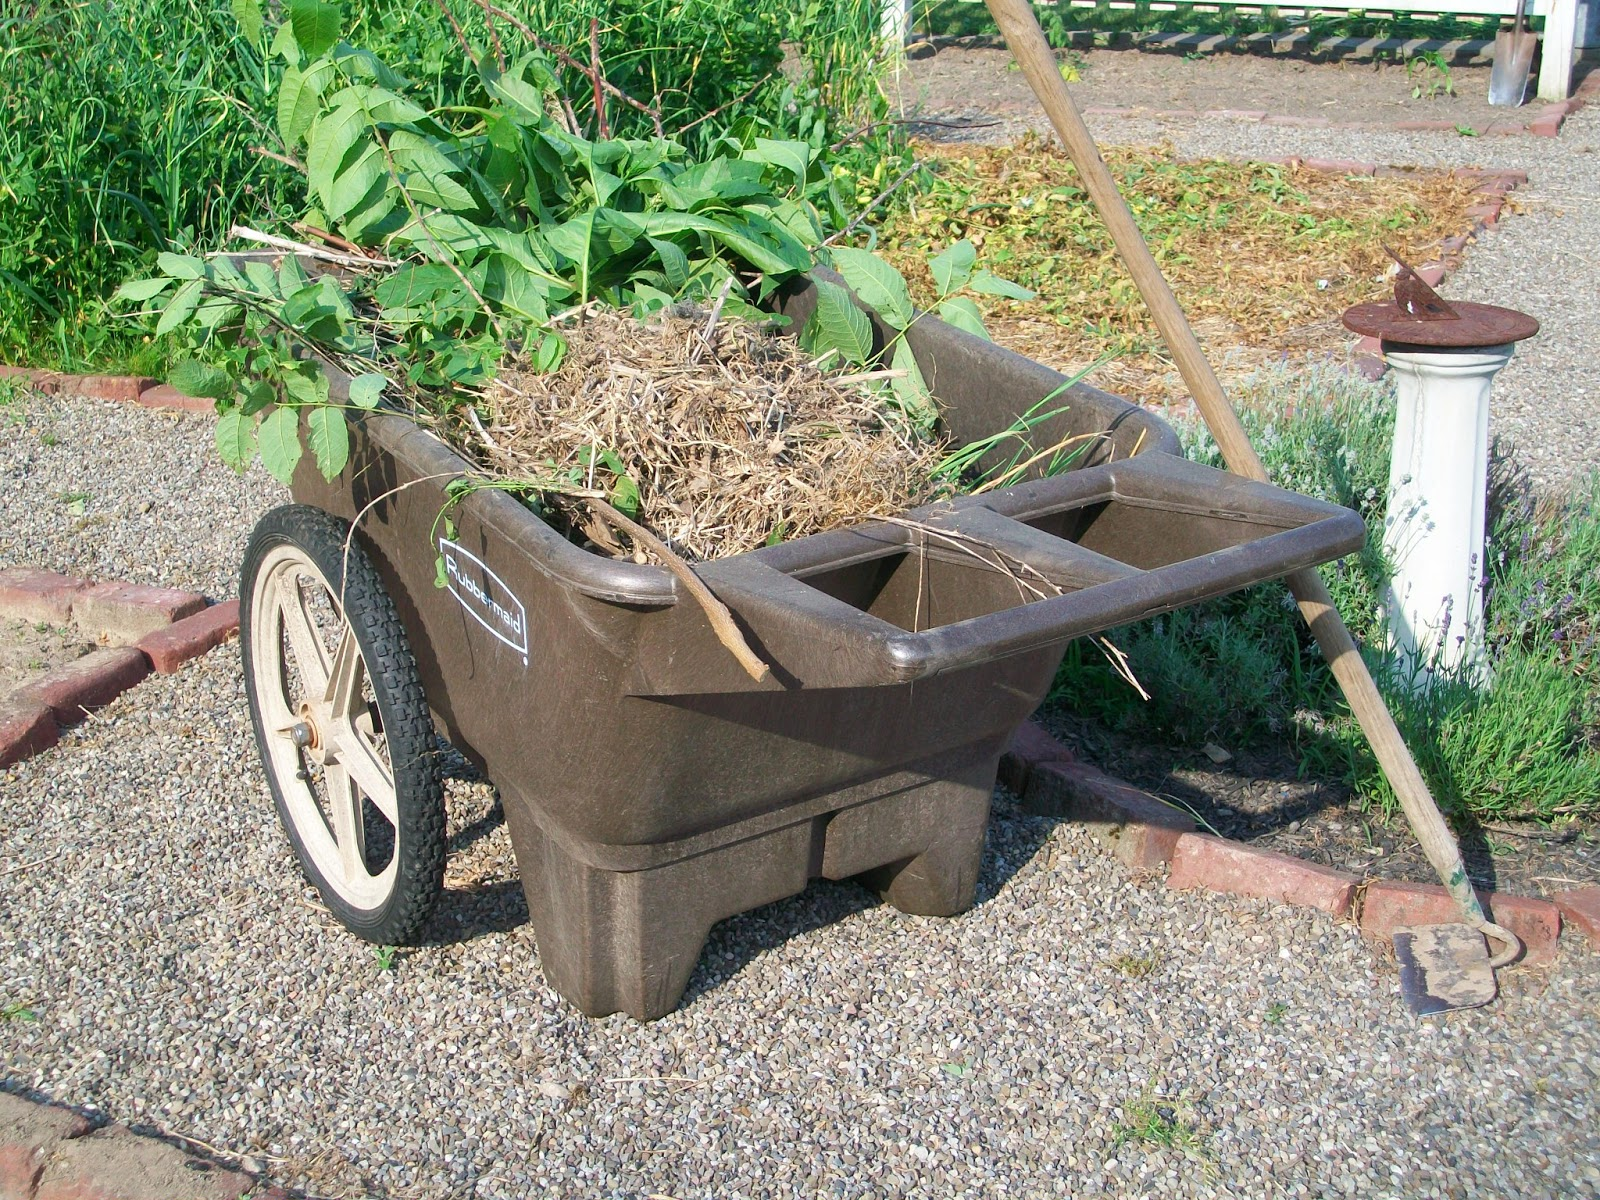 How To Replace Wheels On Rubbermaid Cart